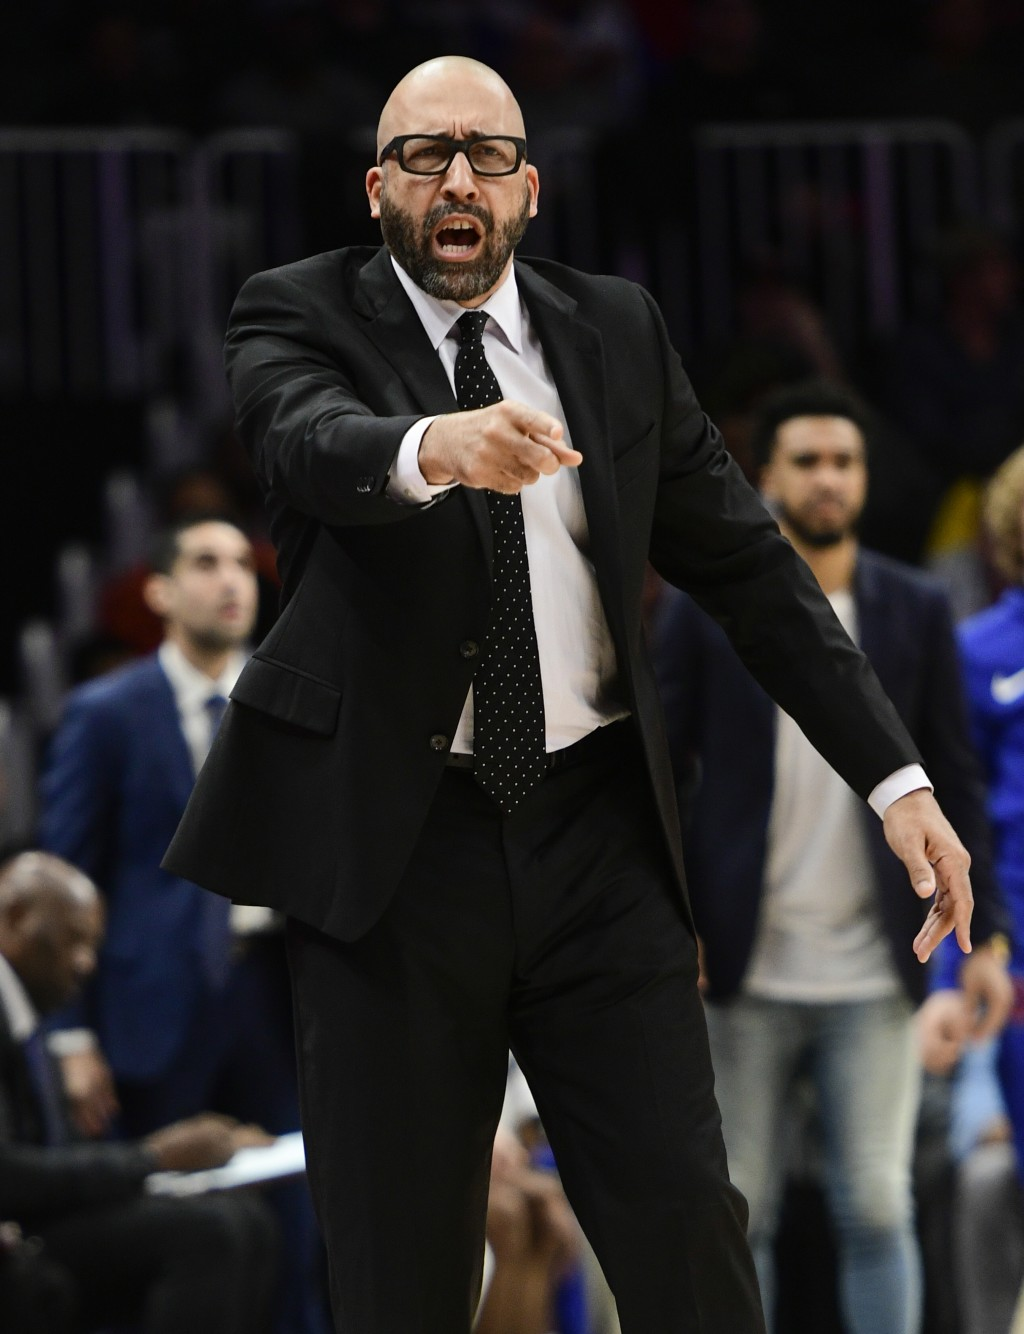 New York Knicks coach David Fizdale gestures during the first half of the team's NBA basketball game against the Atlanta Hawks, Wednesday, Nov. 7, 201